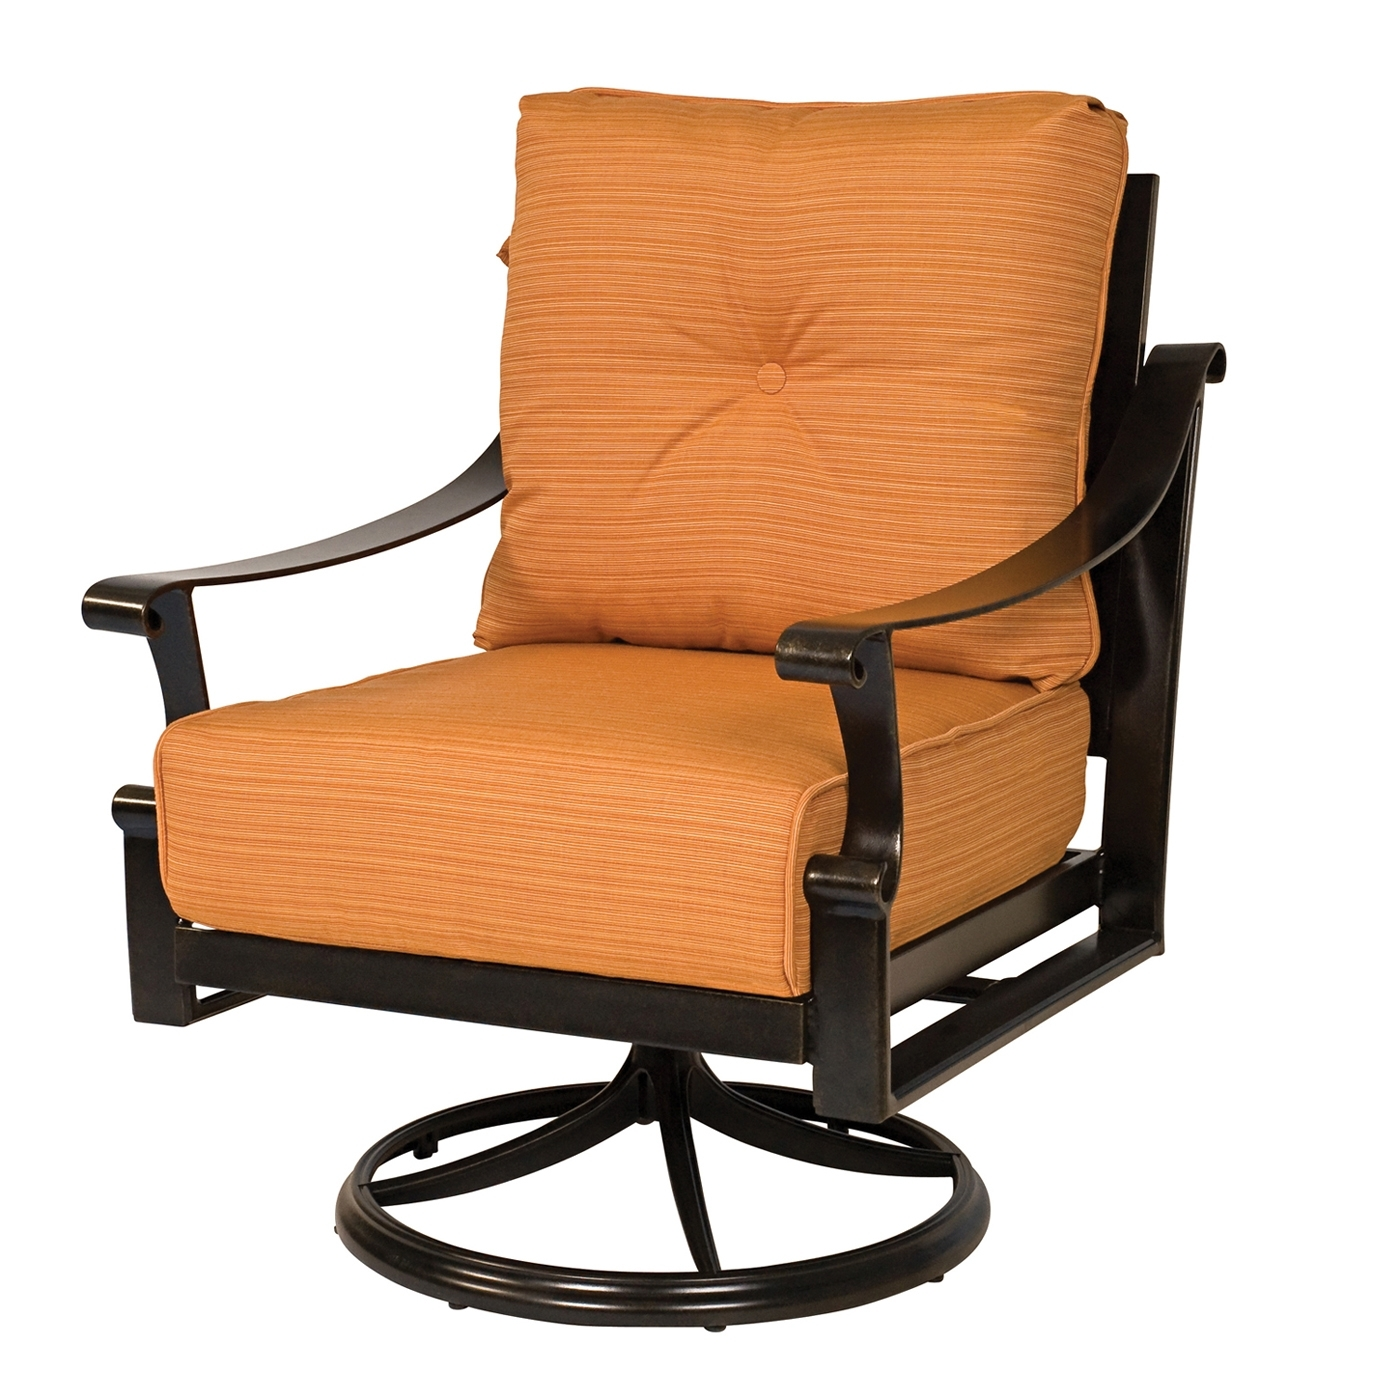 Popular Patio Rocking Swivel Chairs Intended For Awesome Swivel Rocker Patio Chairs Yw5fb Mauriciohm Com Entrancing (View 8 of 15)